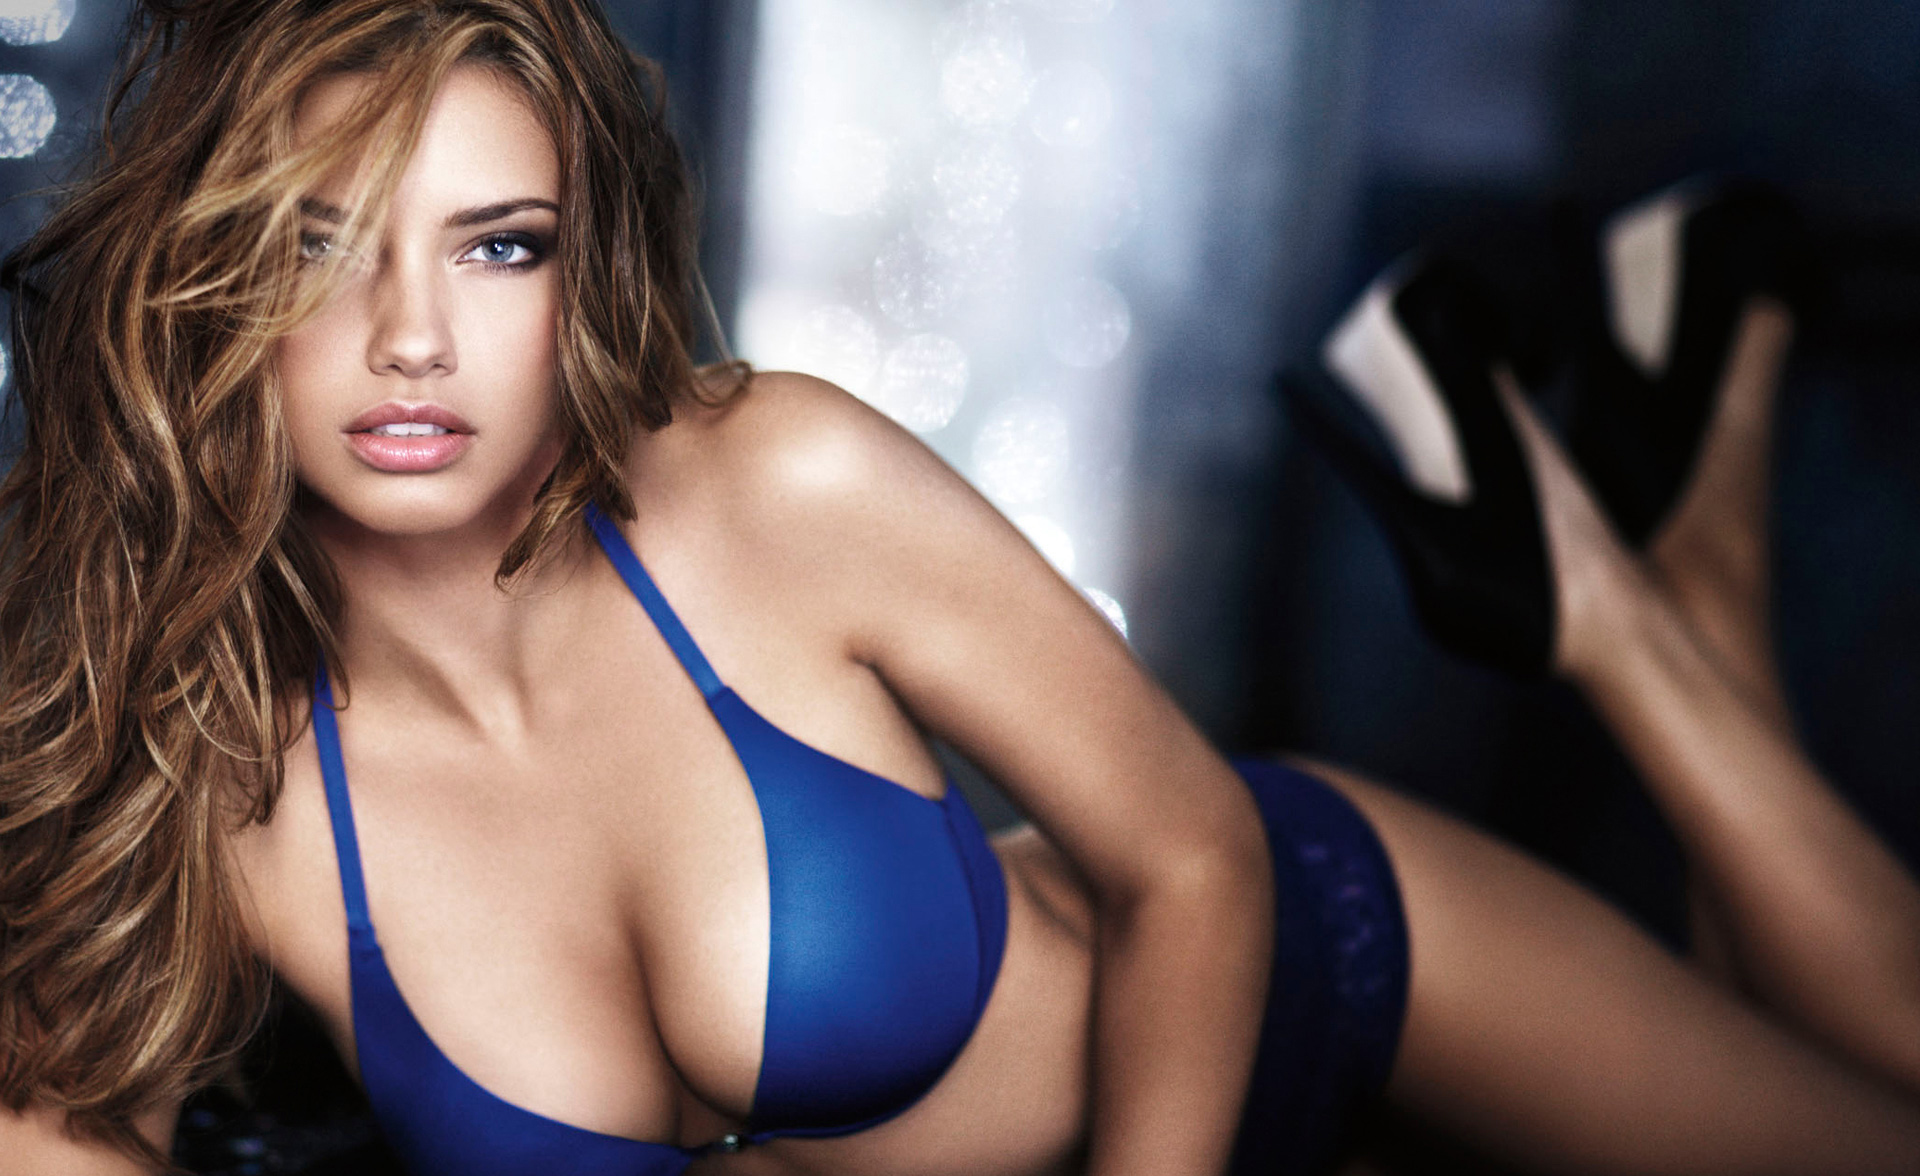 adriana lima hot wallpapers - facebook cover - popopics